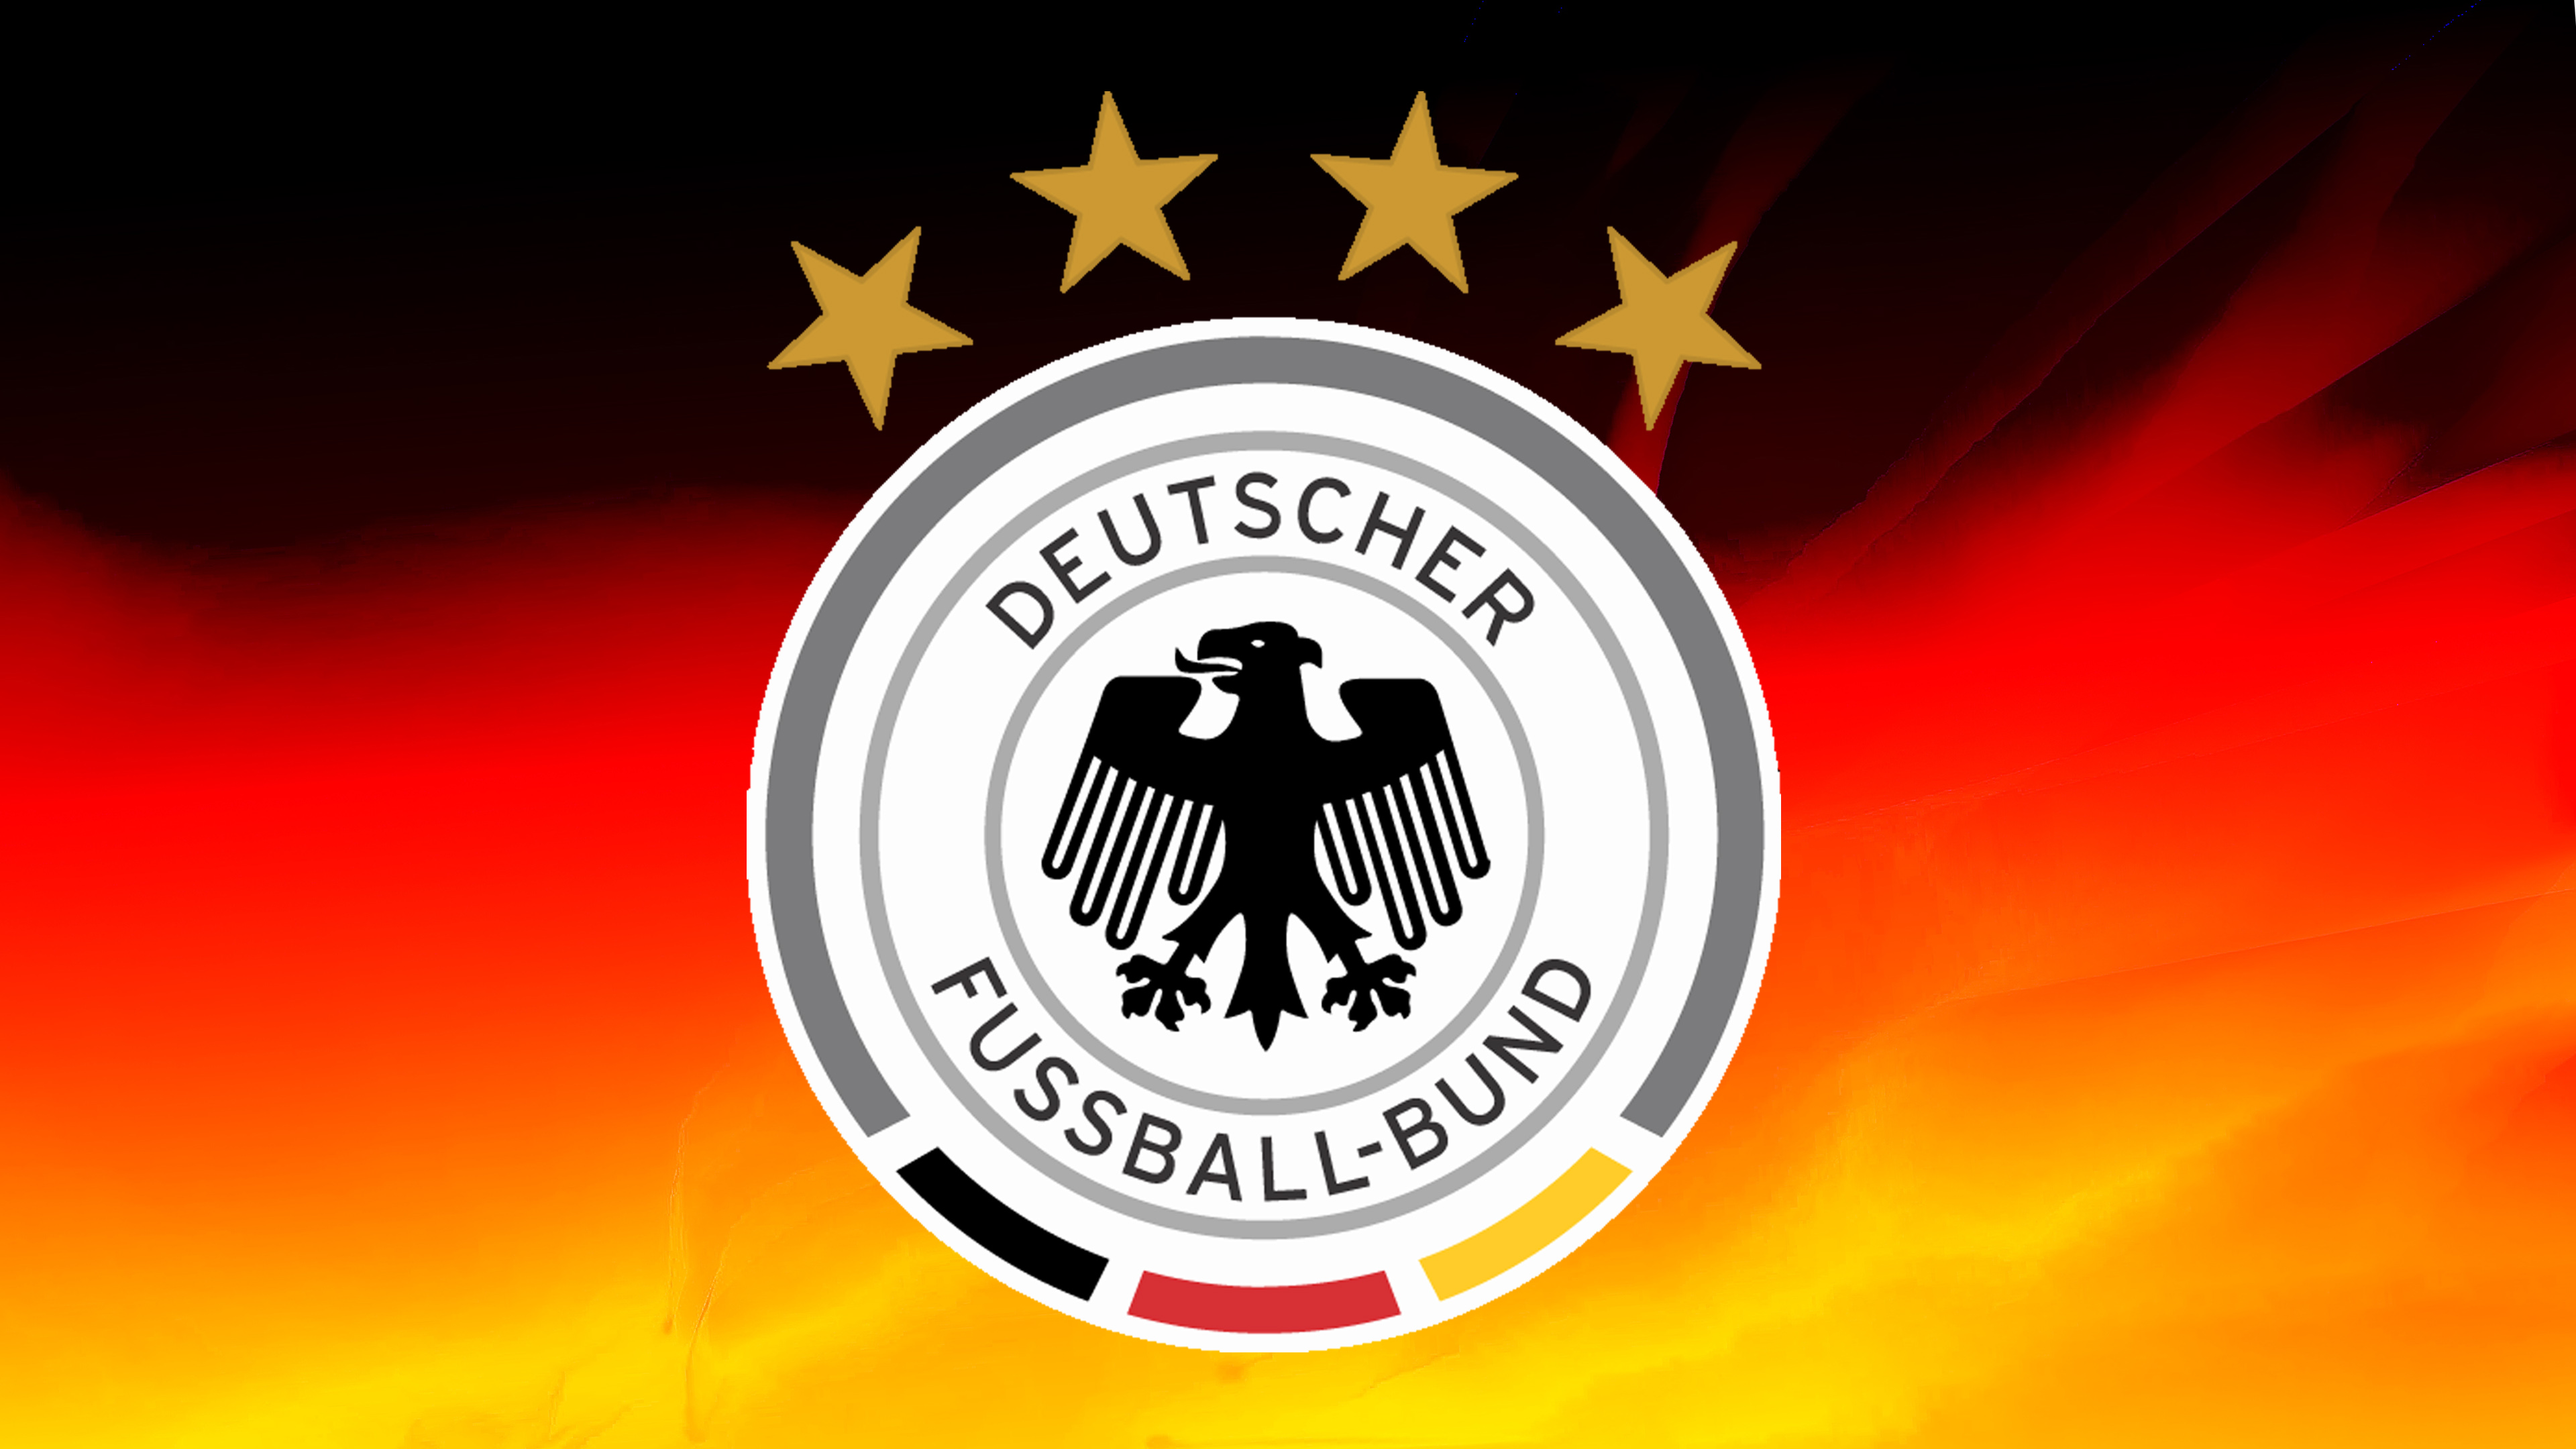 Germany Football Logo Wallpaper with 4 Stars and National Flag | HD Wallpapers | Wallpapers ...